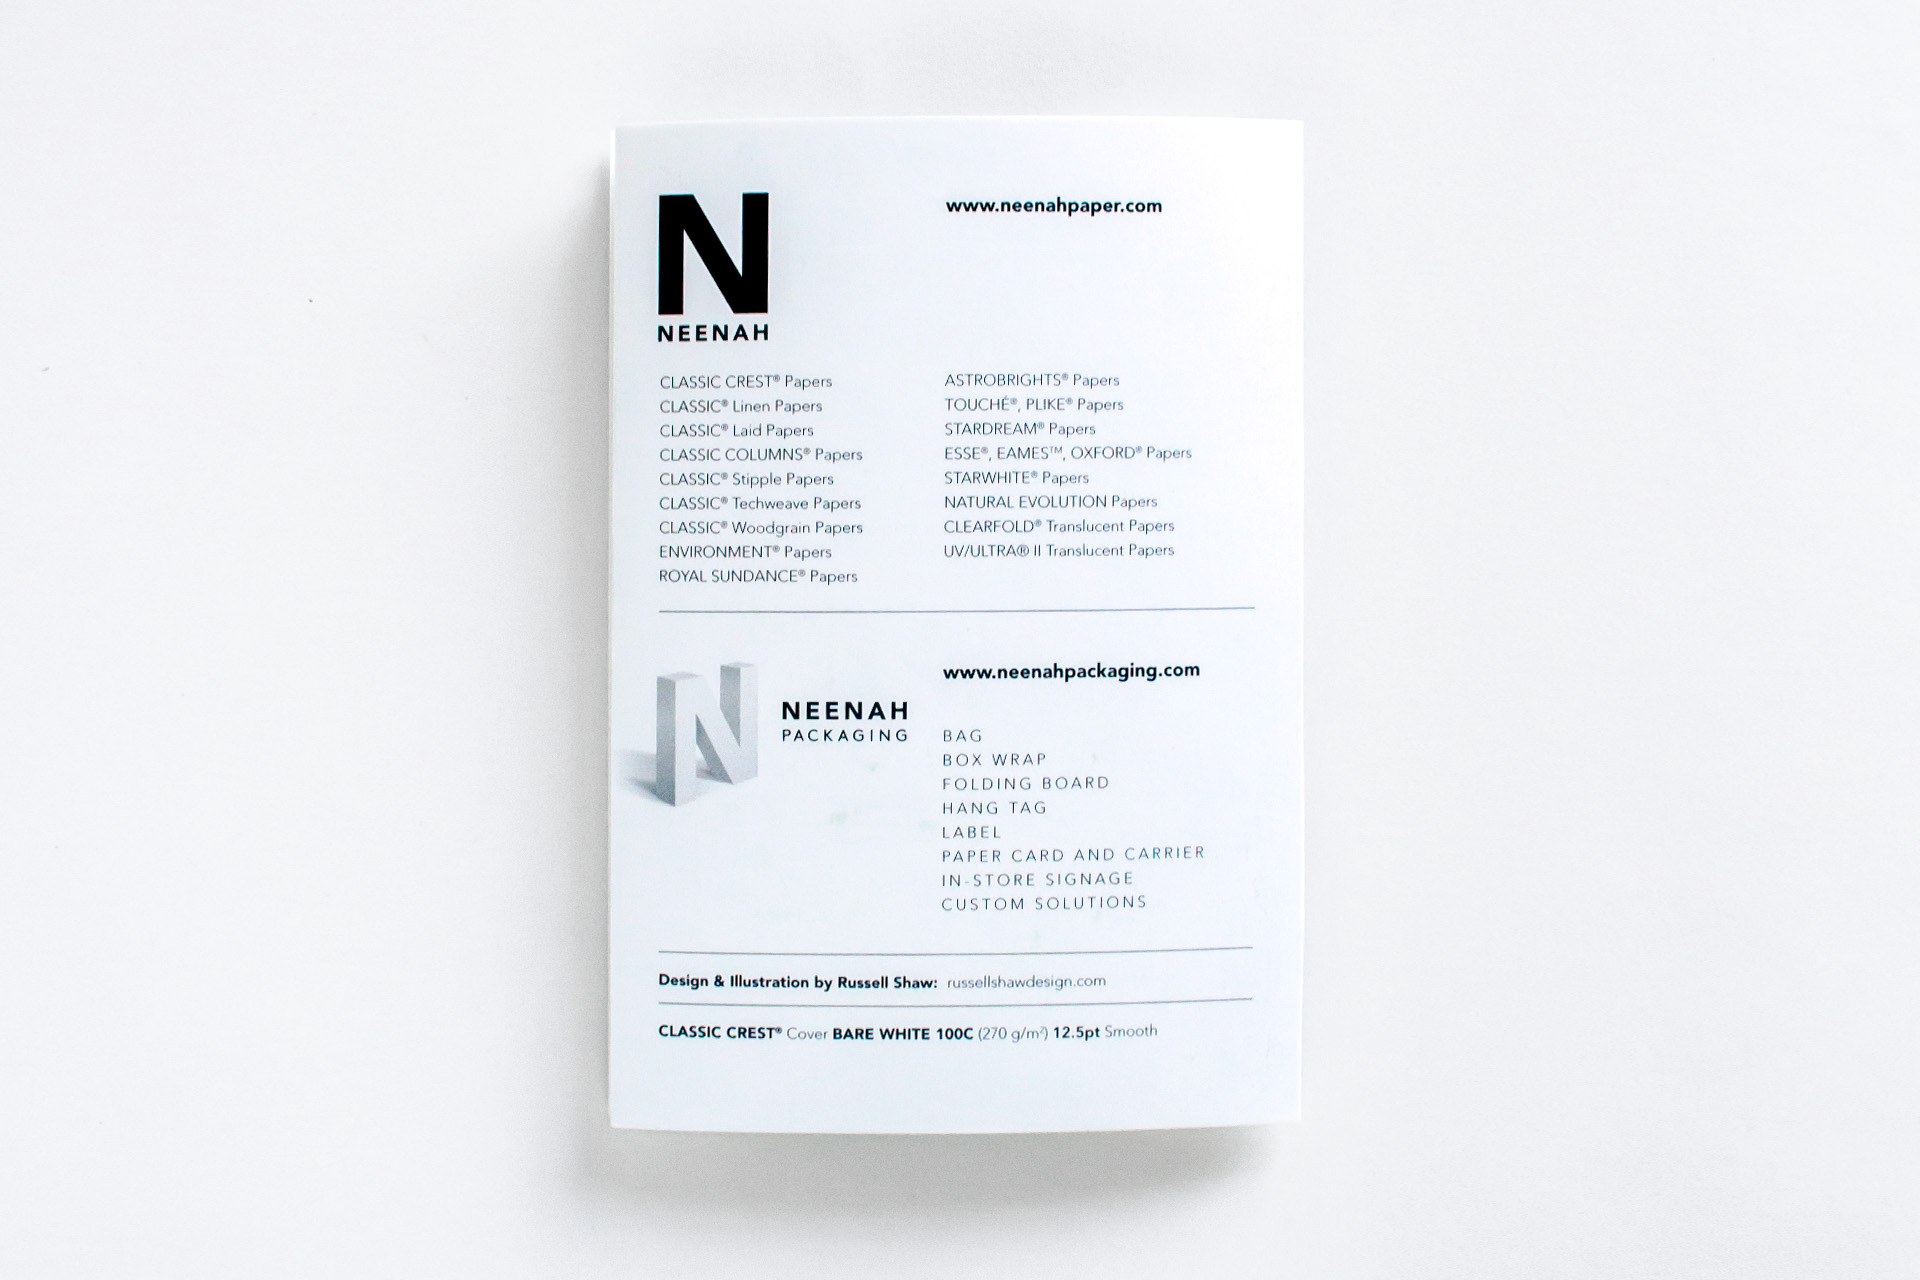 Back cover design of the Neenah Paper Presents Boston HOW Design Live 2018 conference promotional materials shows the full Neenah and Neenah Packaging product listing and credits Design and Illustration by Russell Shaw, with the paper Spec Classic Crest Cover Bare White 100C 12.5pt Smooth.